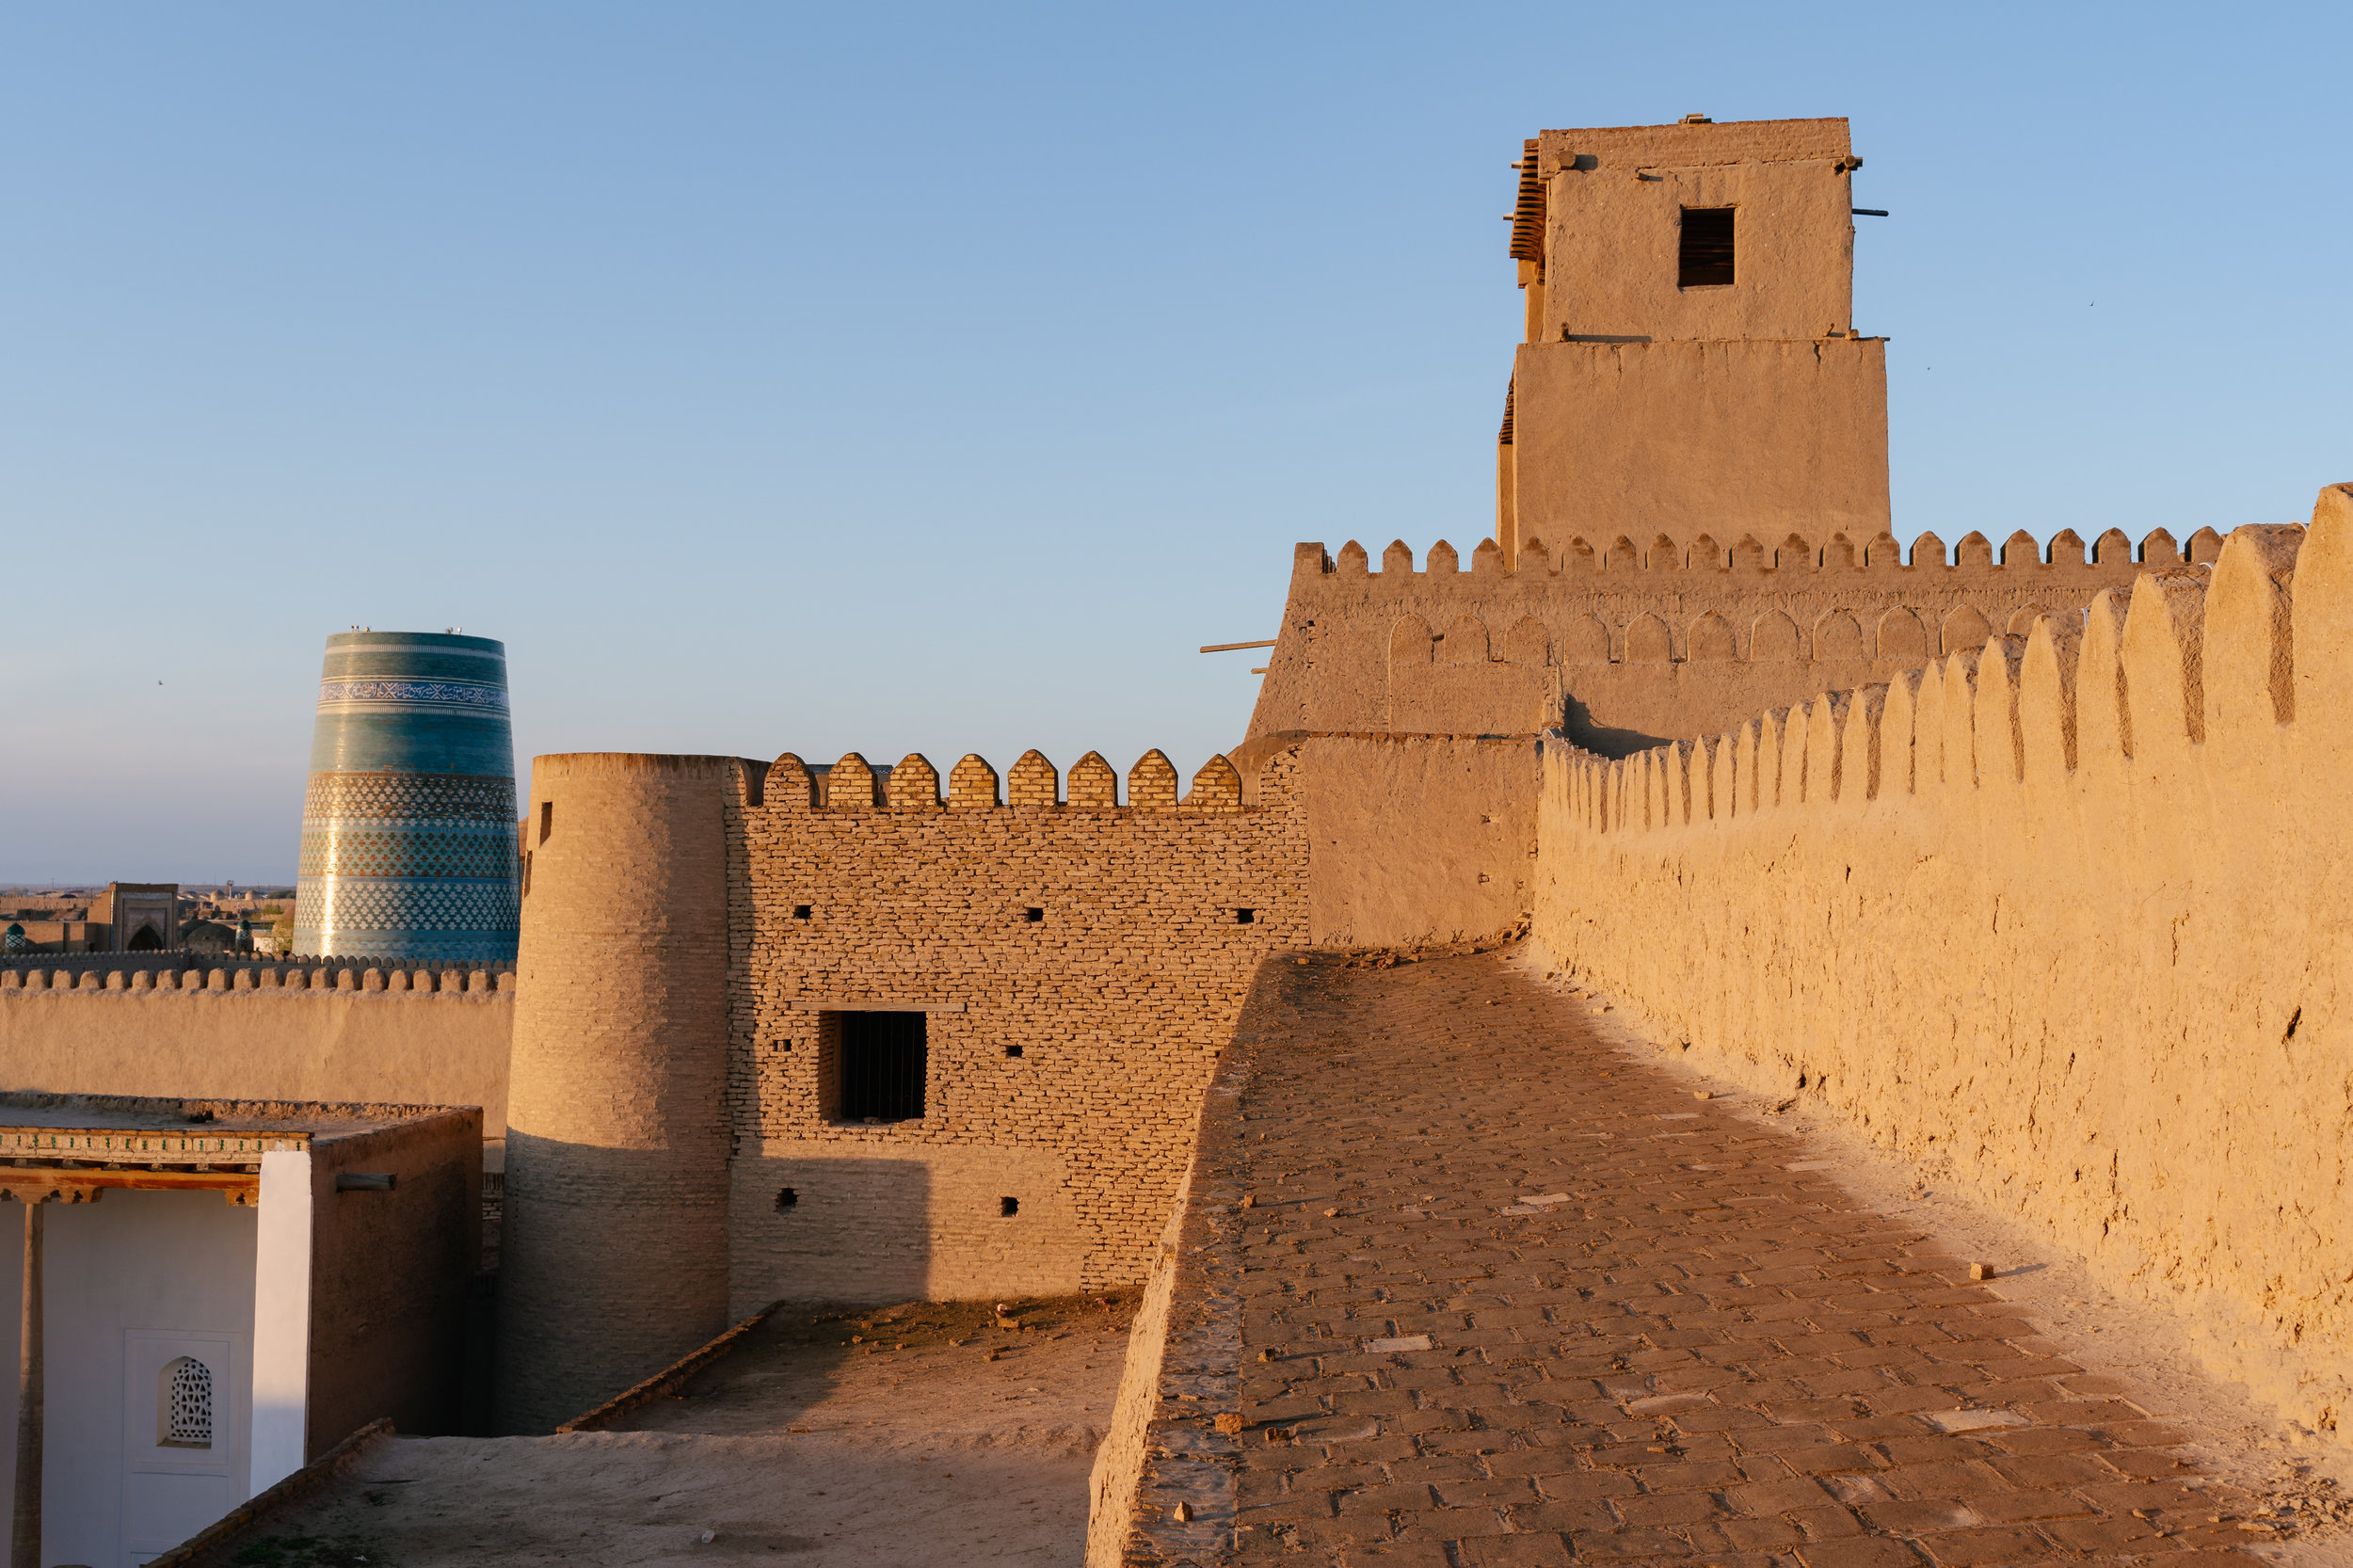 The wall and palace at sunrise.